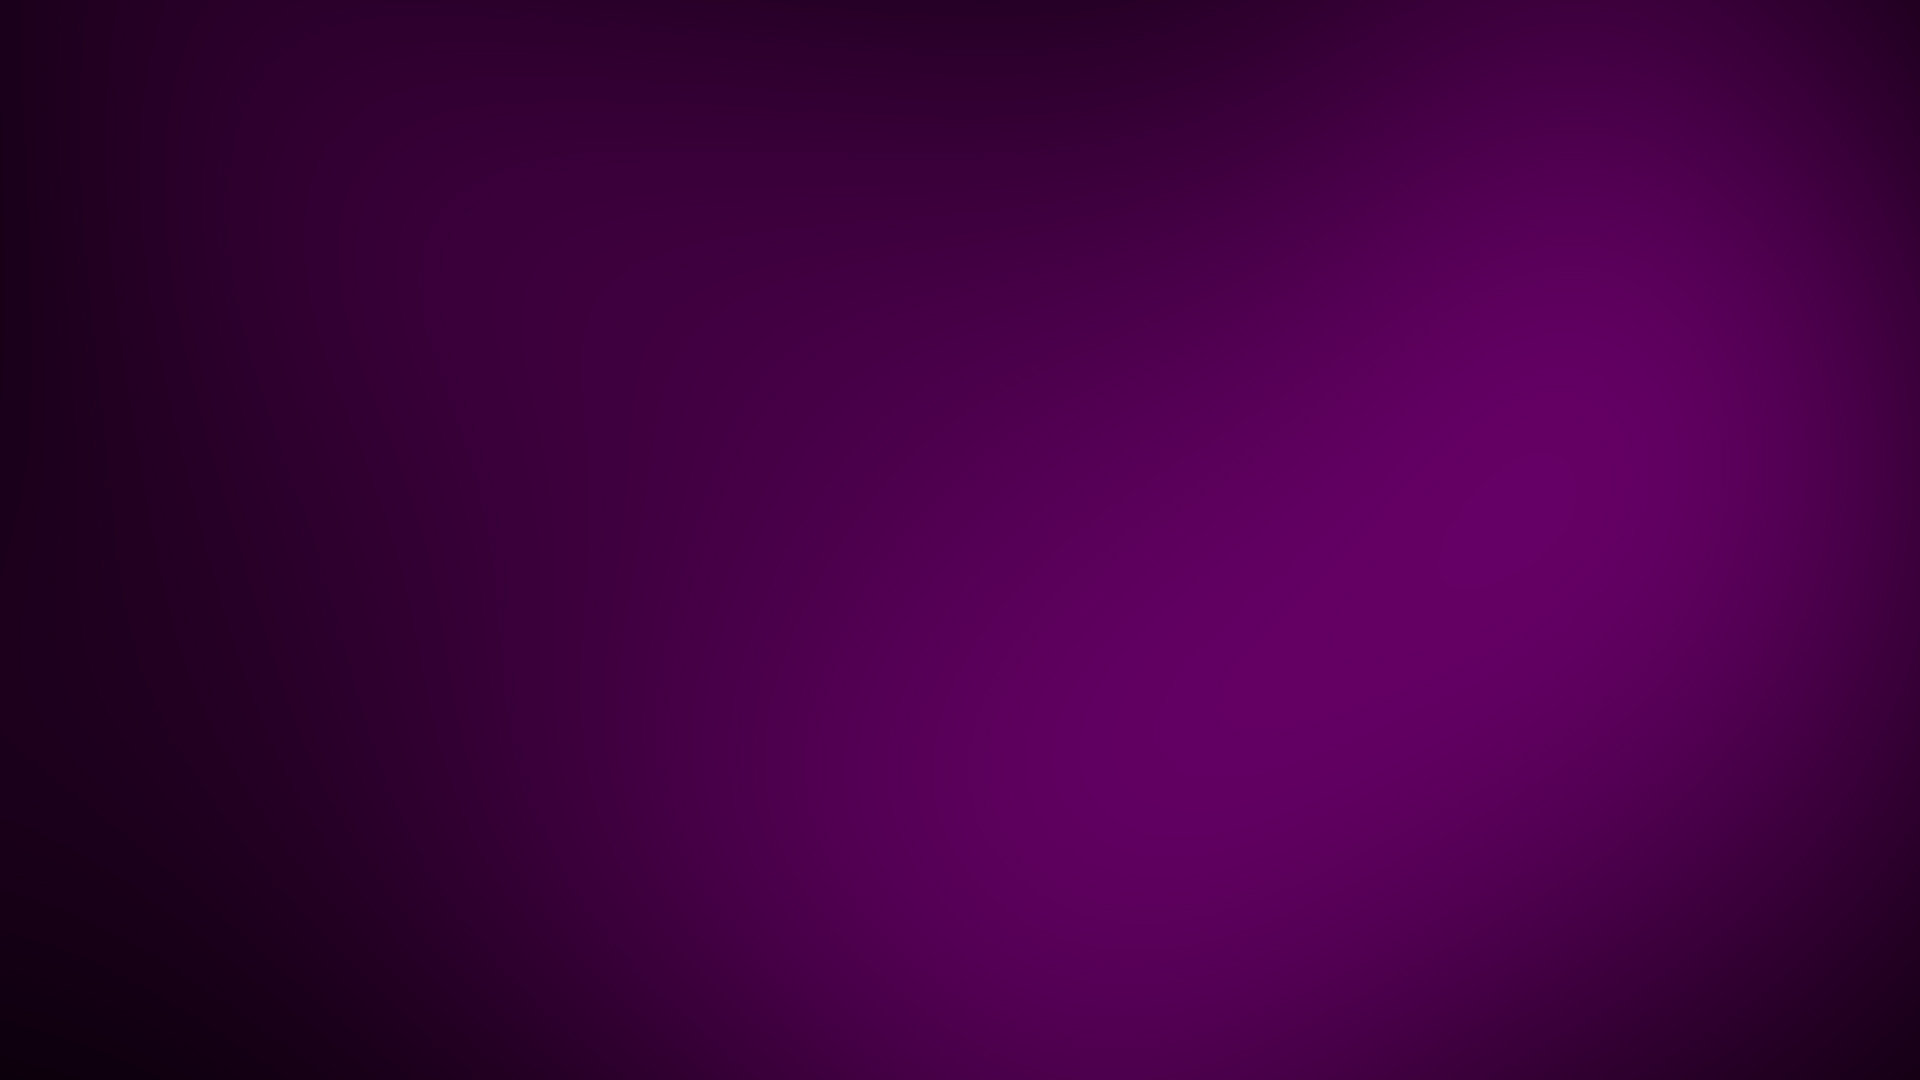 Download full hd Purple Pattern computer wallpaper ID:144877 for free